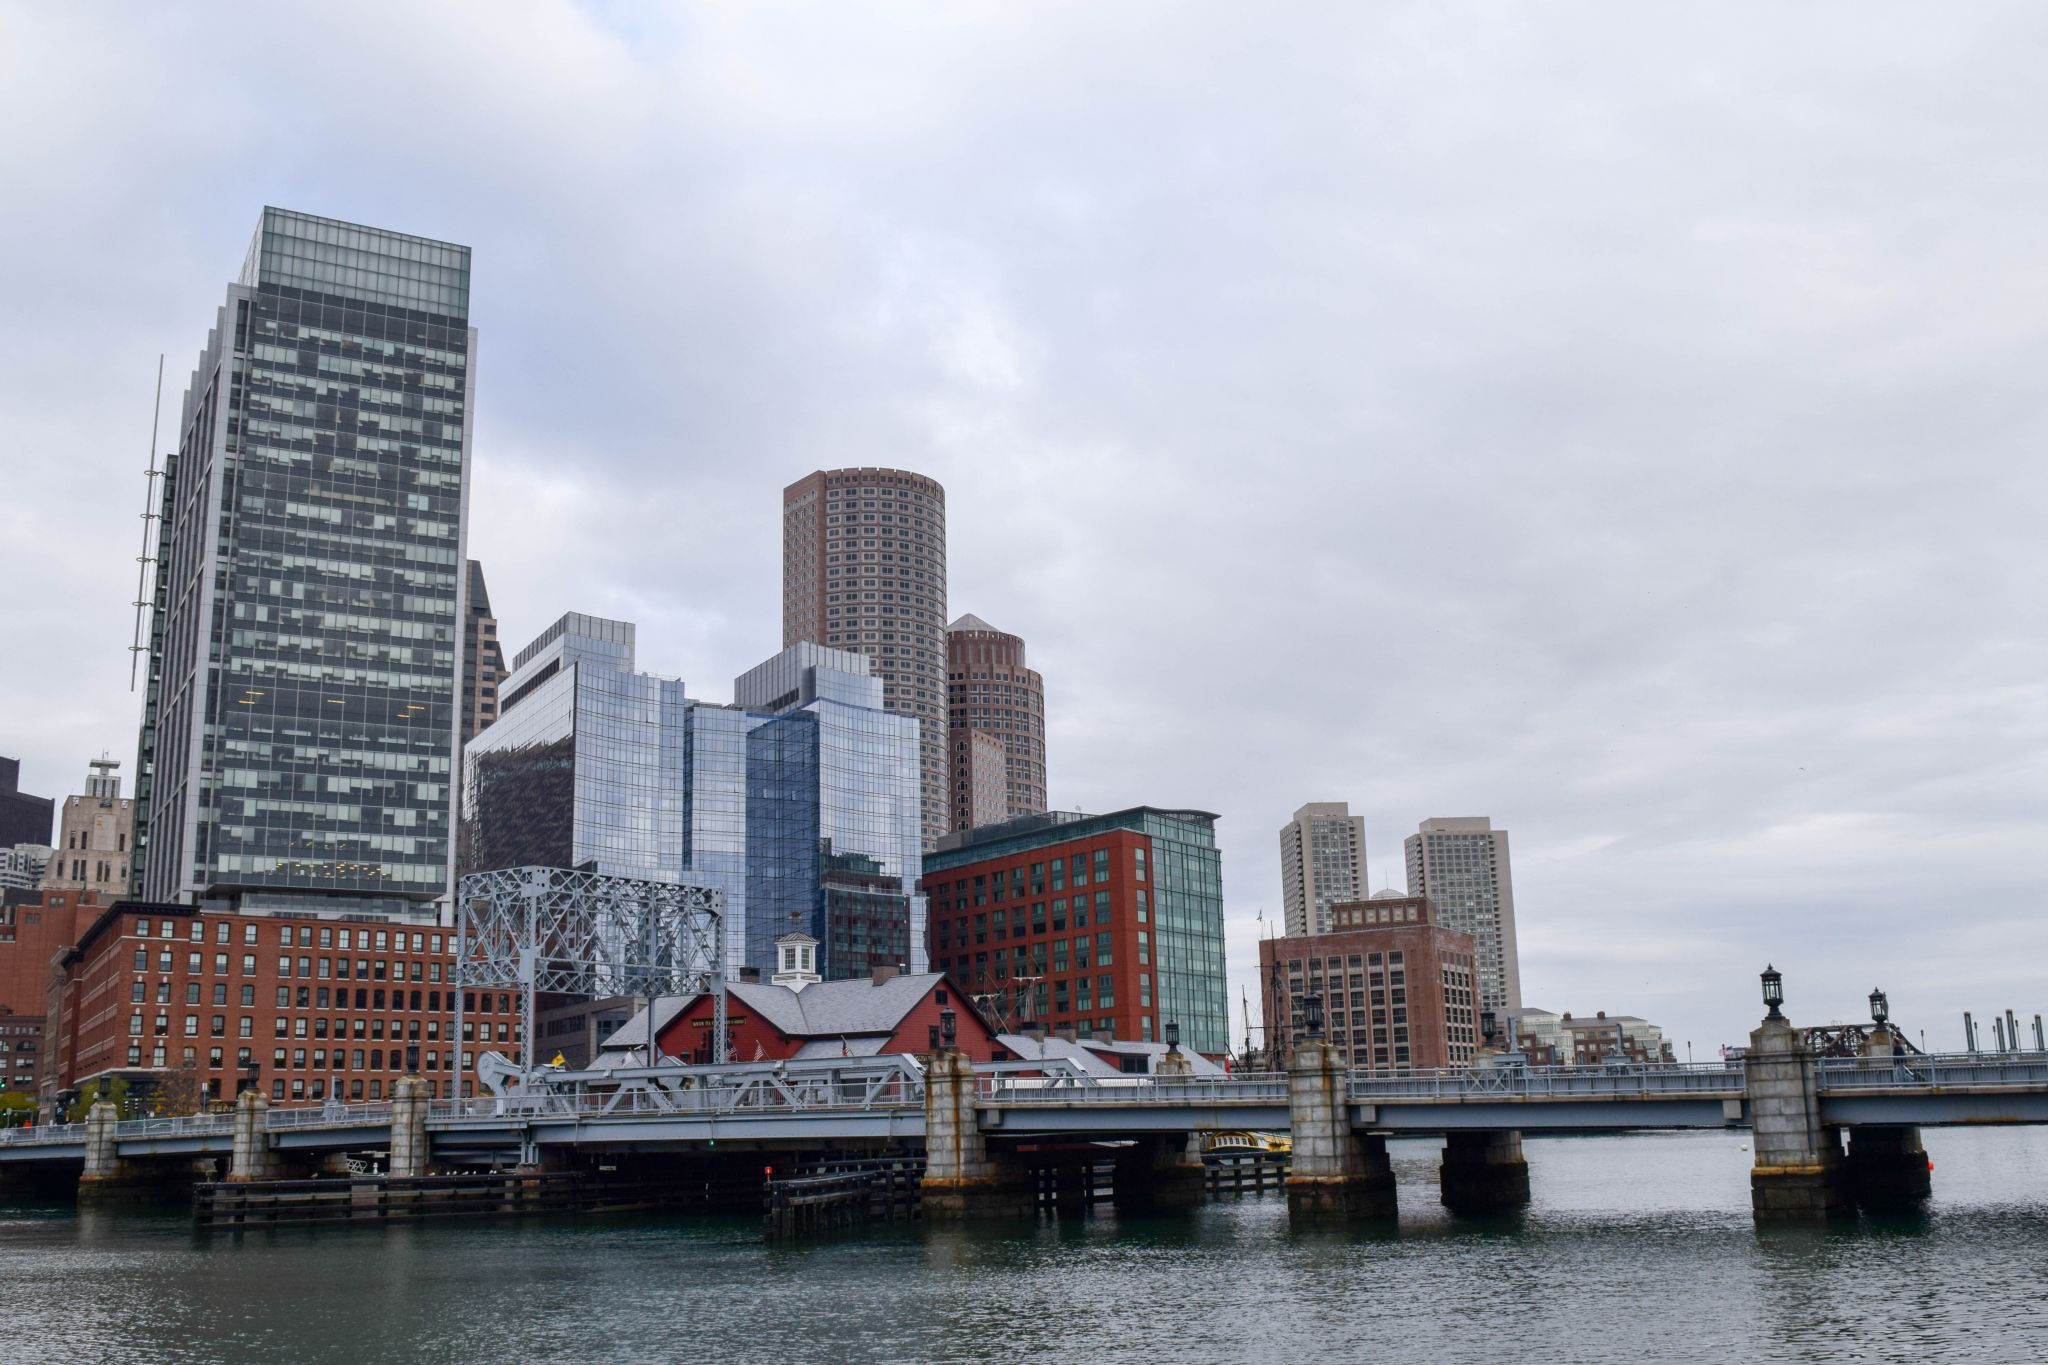 Boston Buzz Aloft Seaport Hotel A Stay In The Hotels Chic Party 11